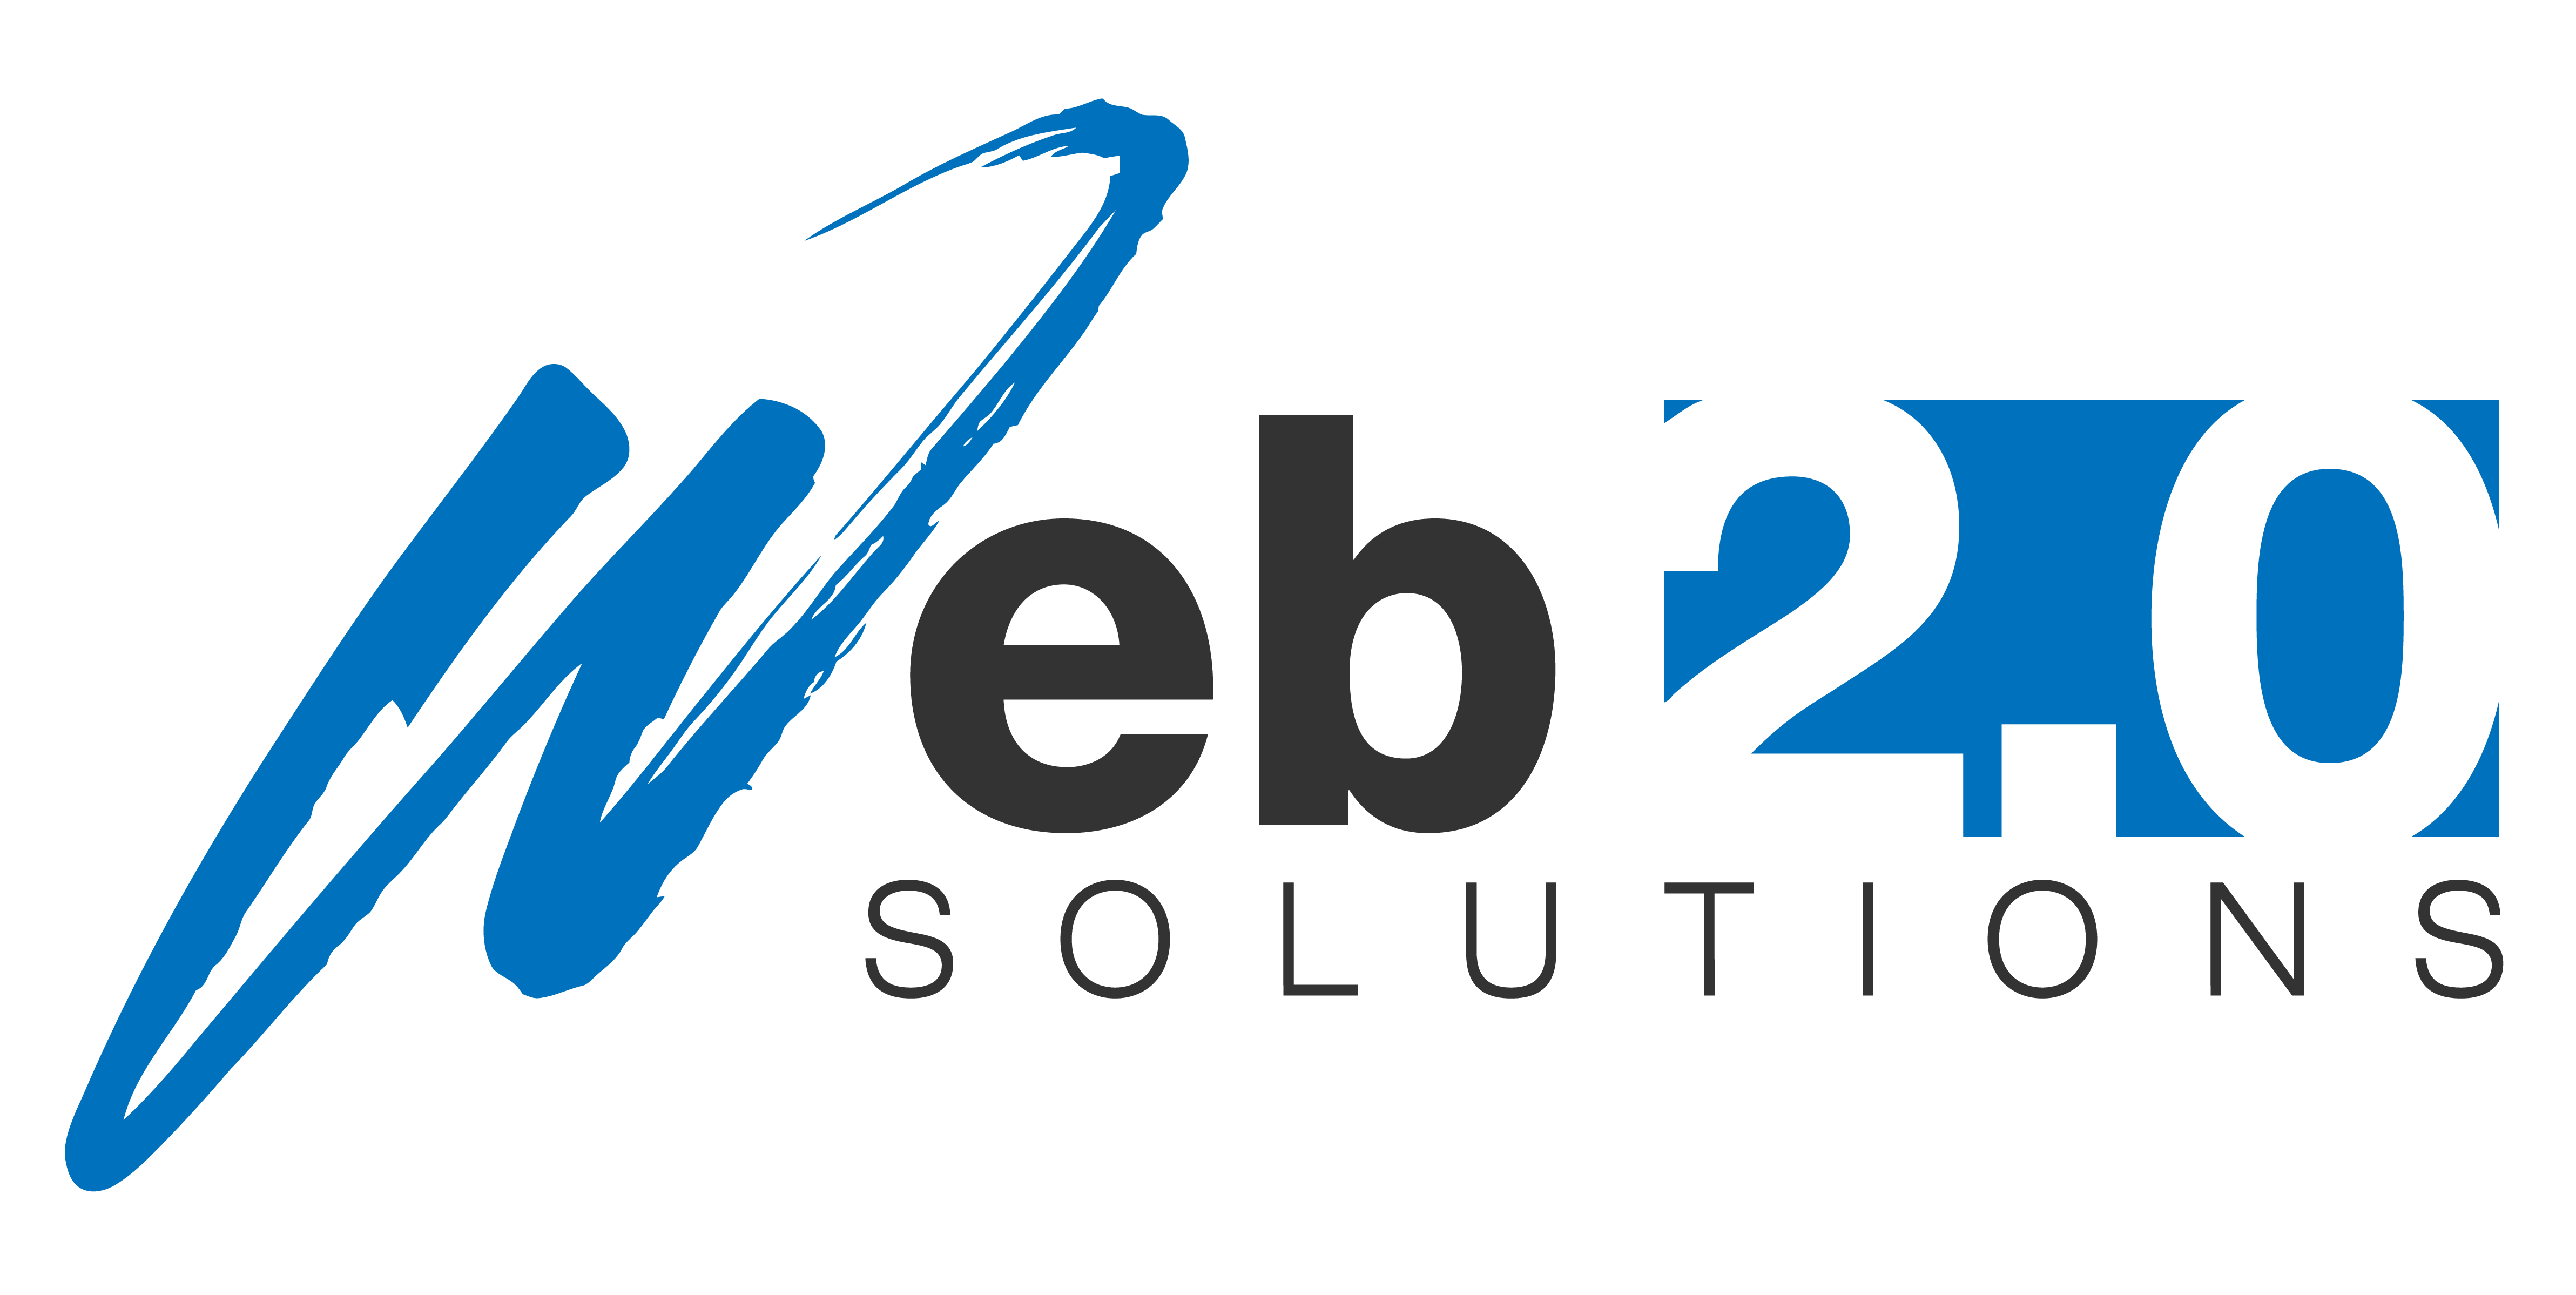 Web 2.0 Solutions